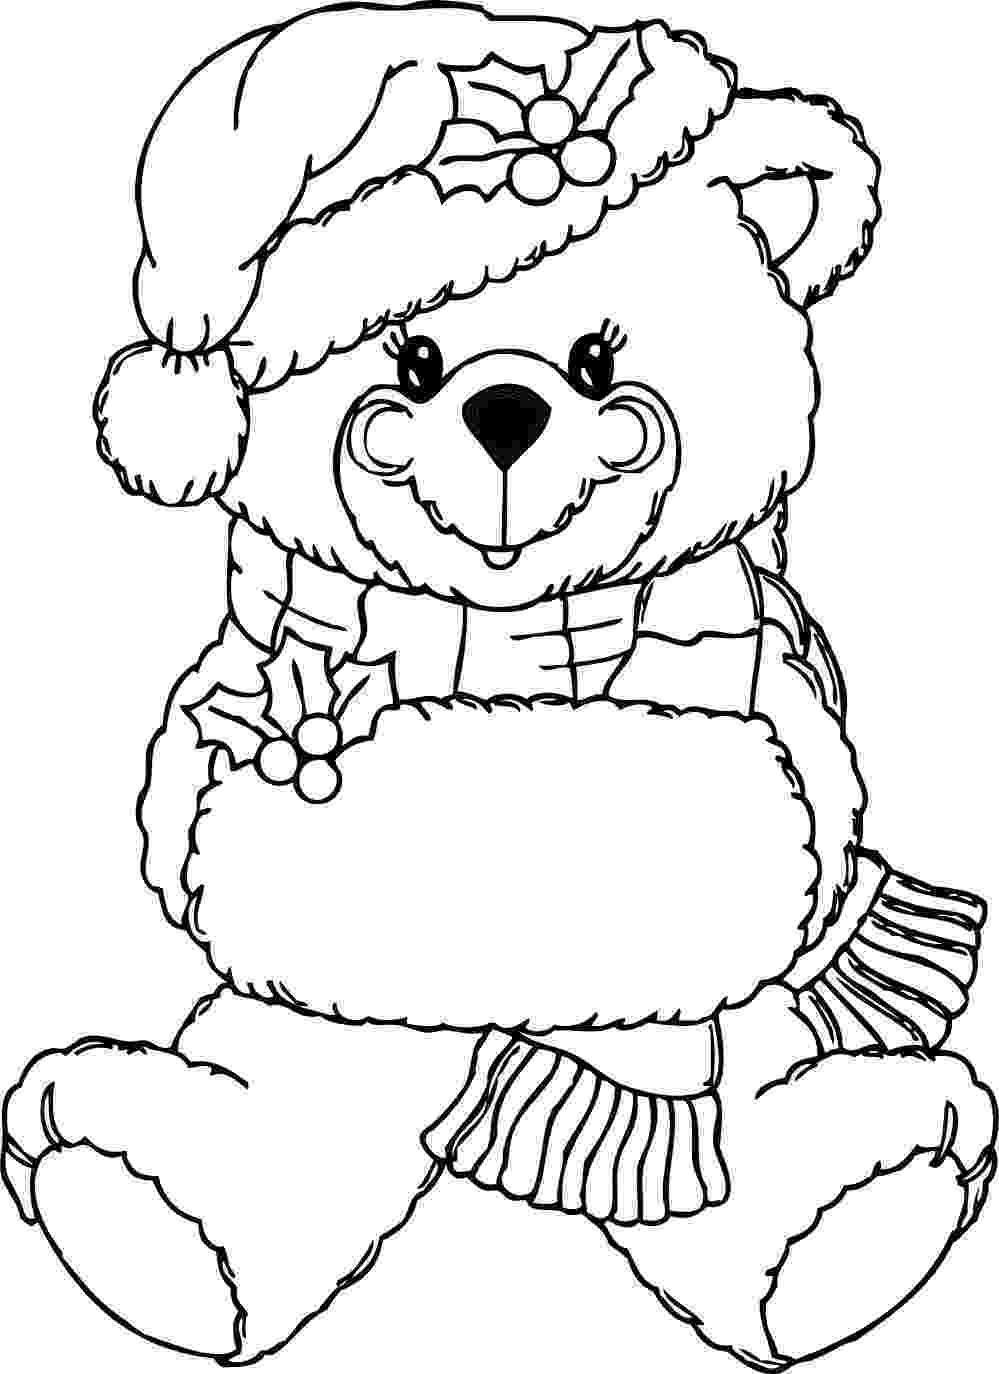 bear pictures to color free printable bear coloring pages for kids color to pictures bear